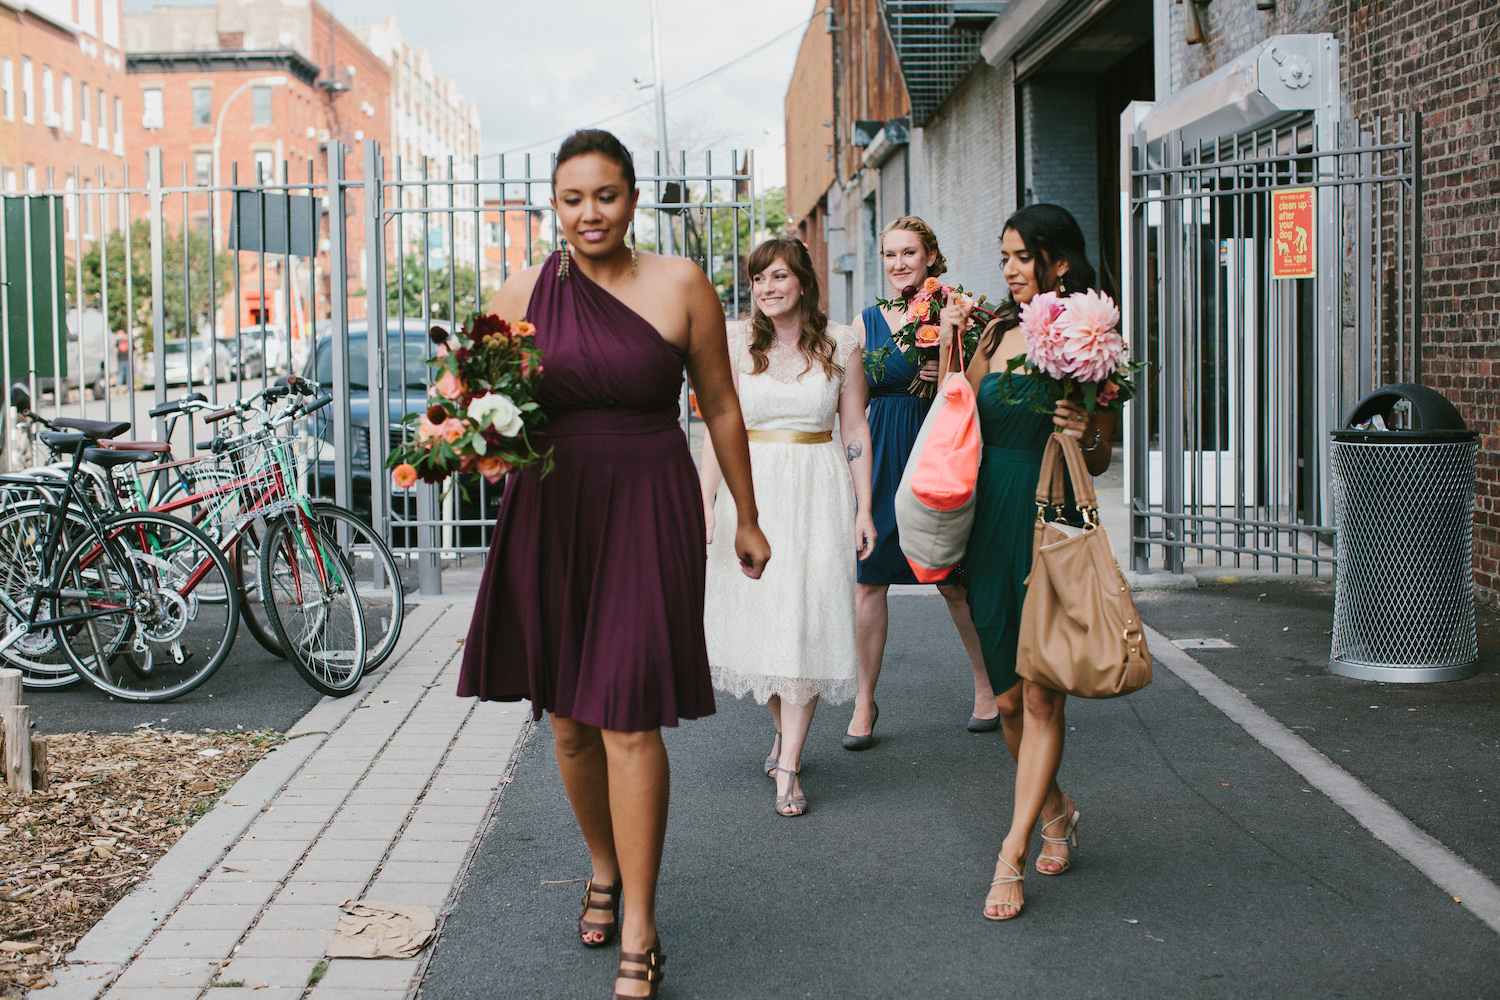 Full Aperture Floral & Corey Torpie Photography  - Brooklyn Wedding - 25.jpeg